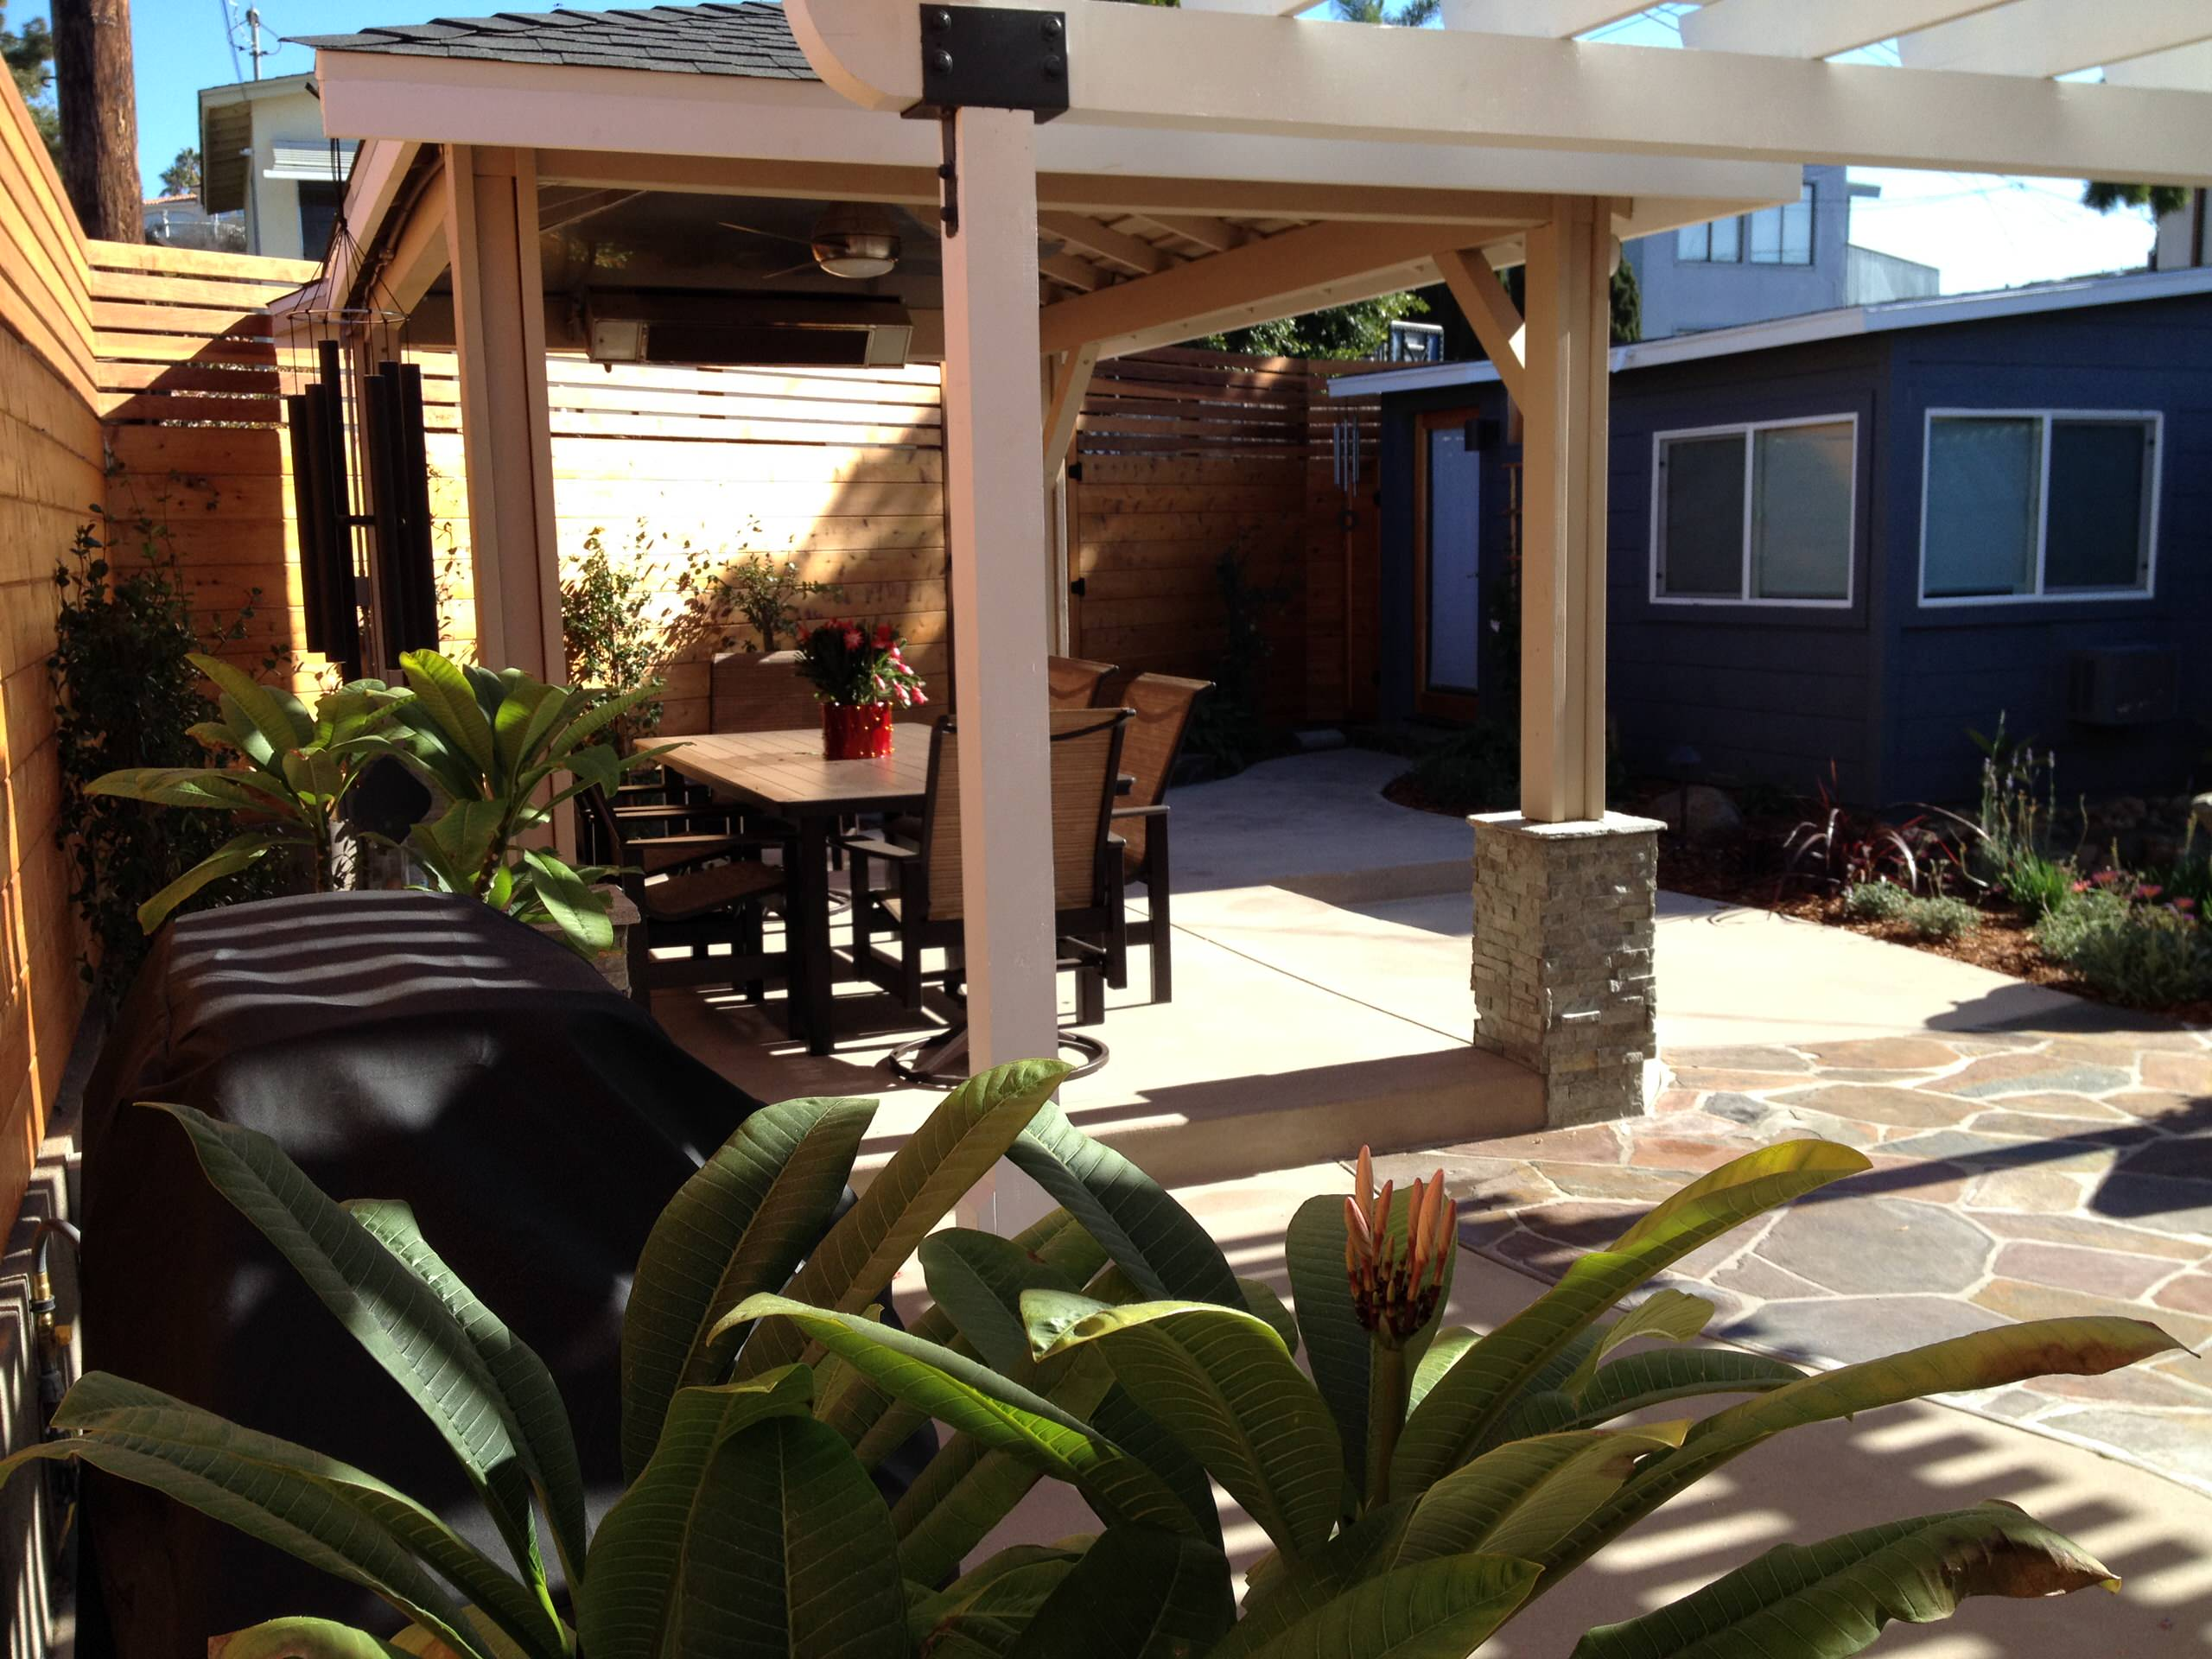 Pergola and Dining Area with Flagstone